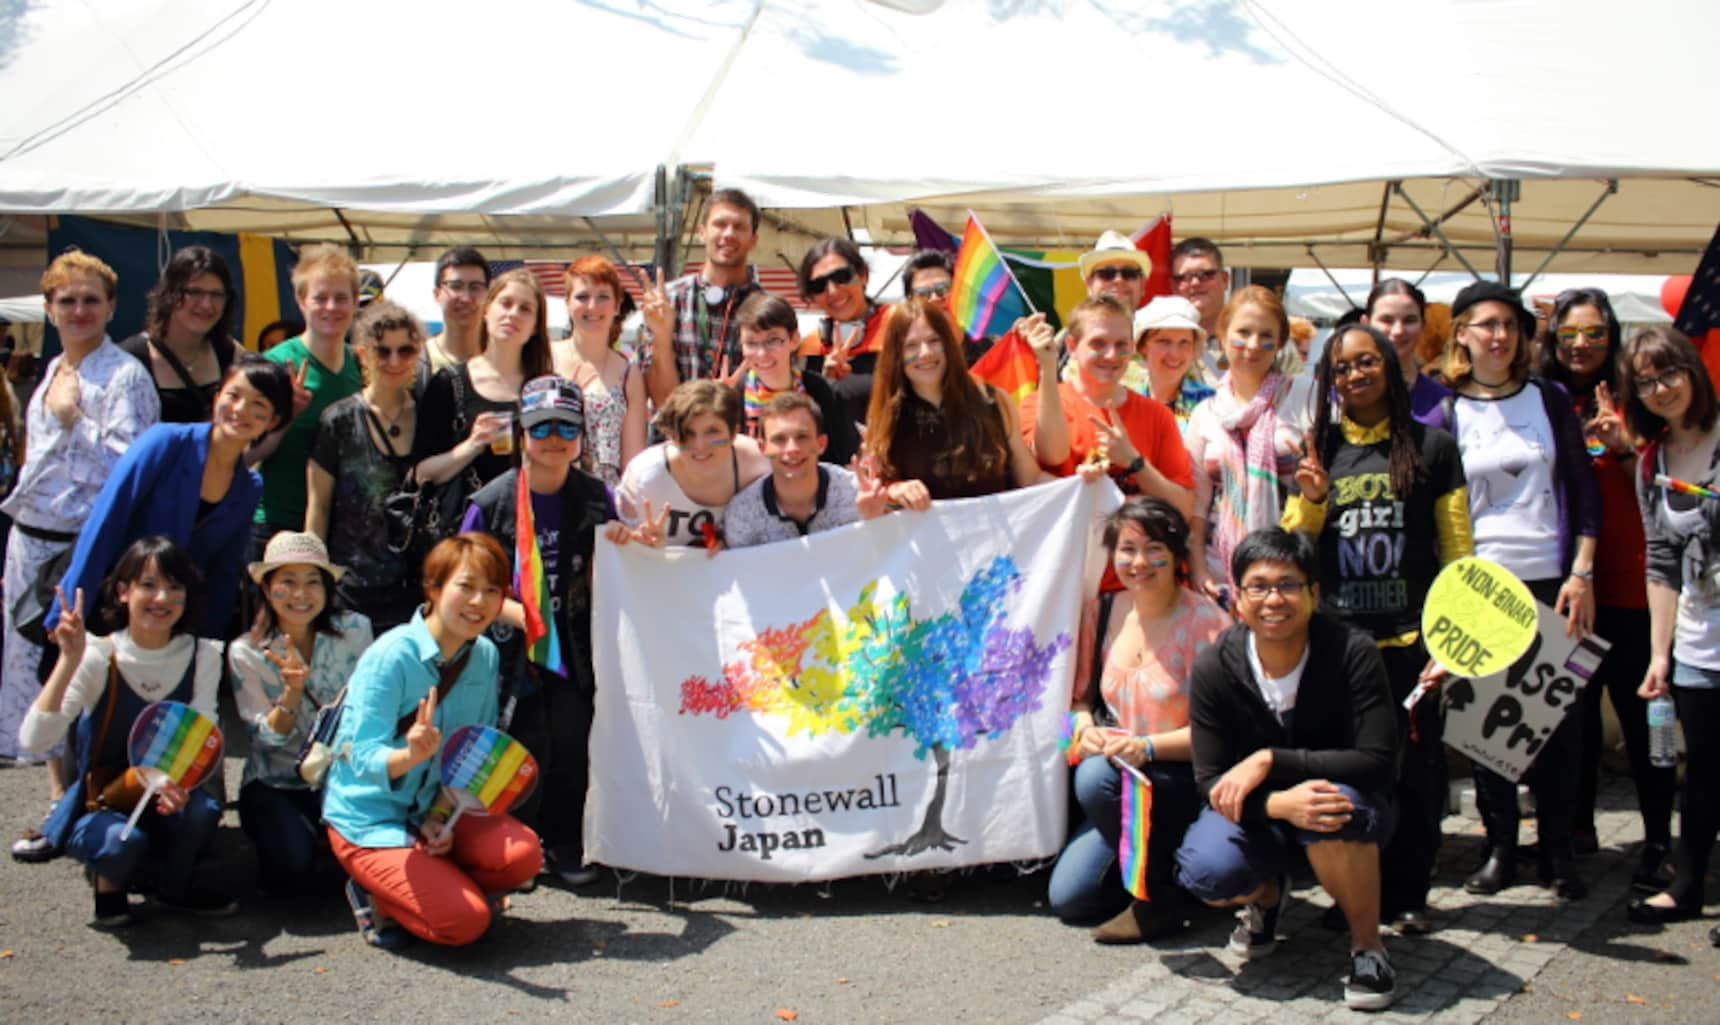 All About Stonewall Japan